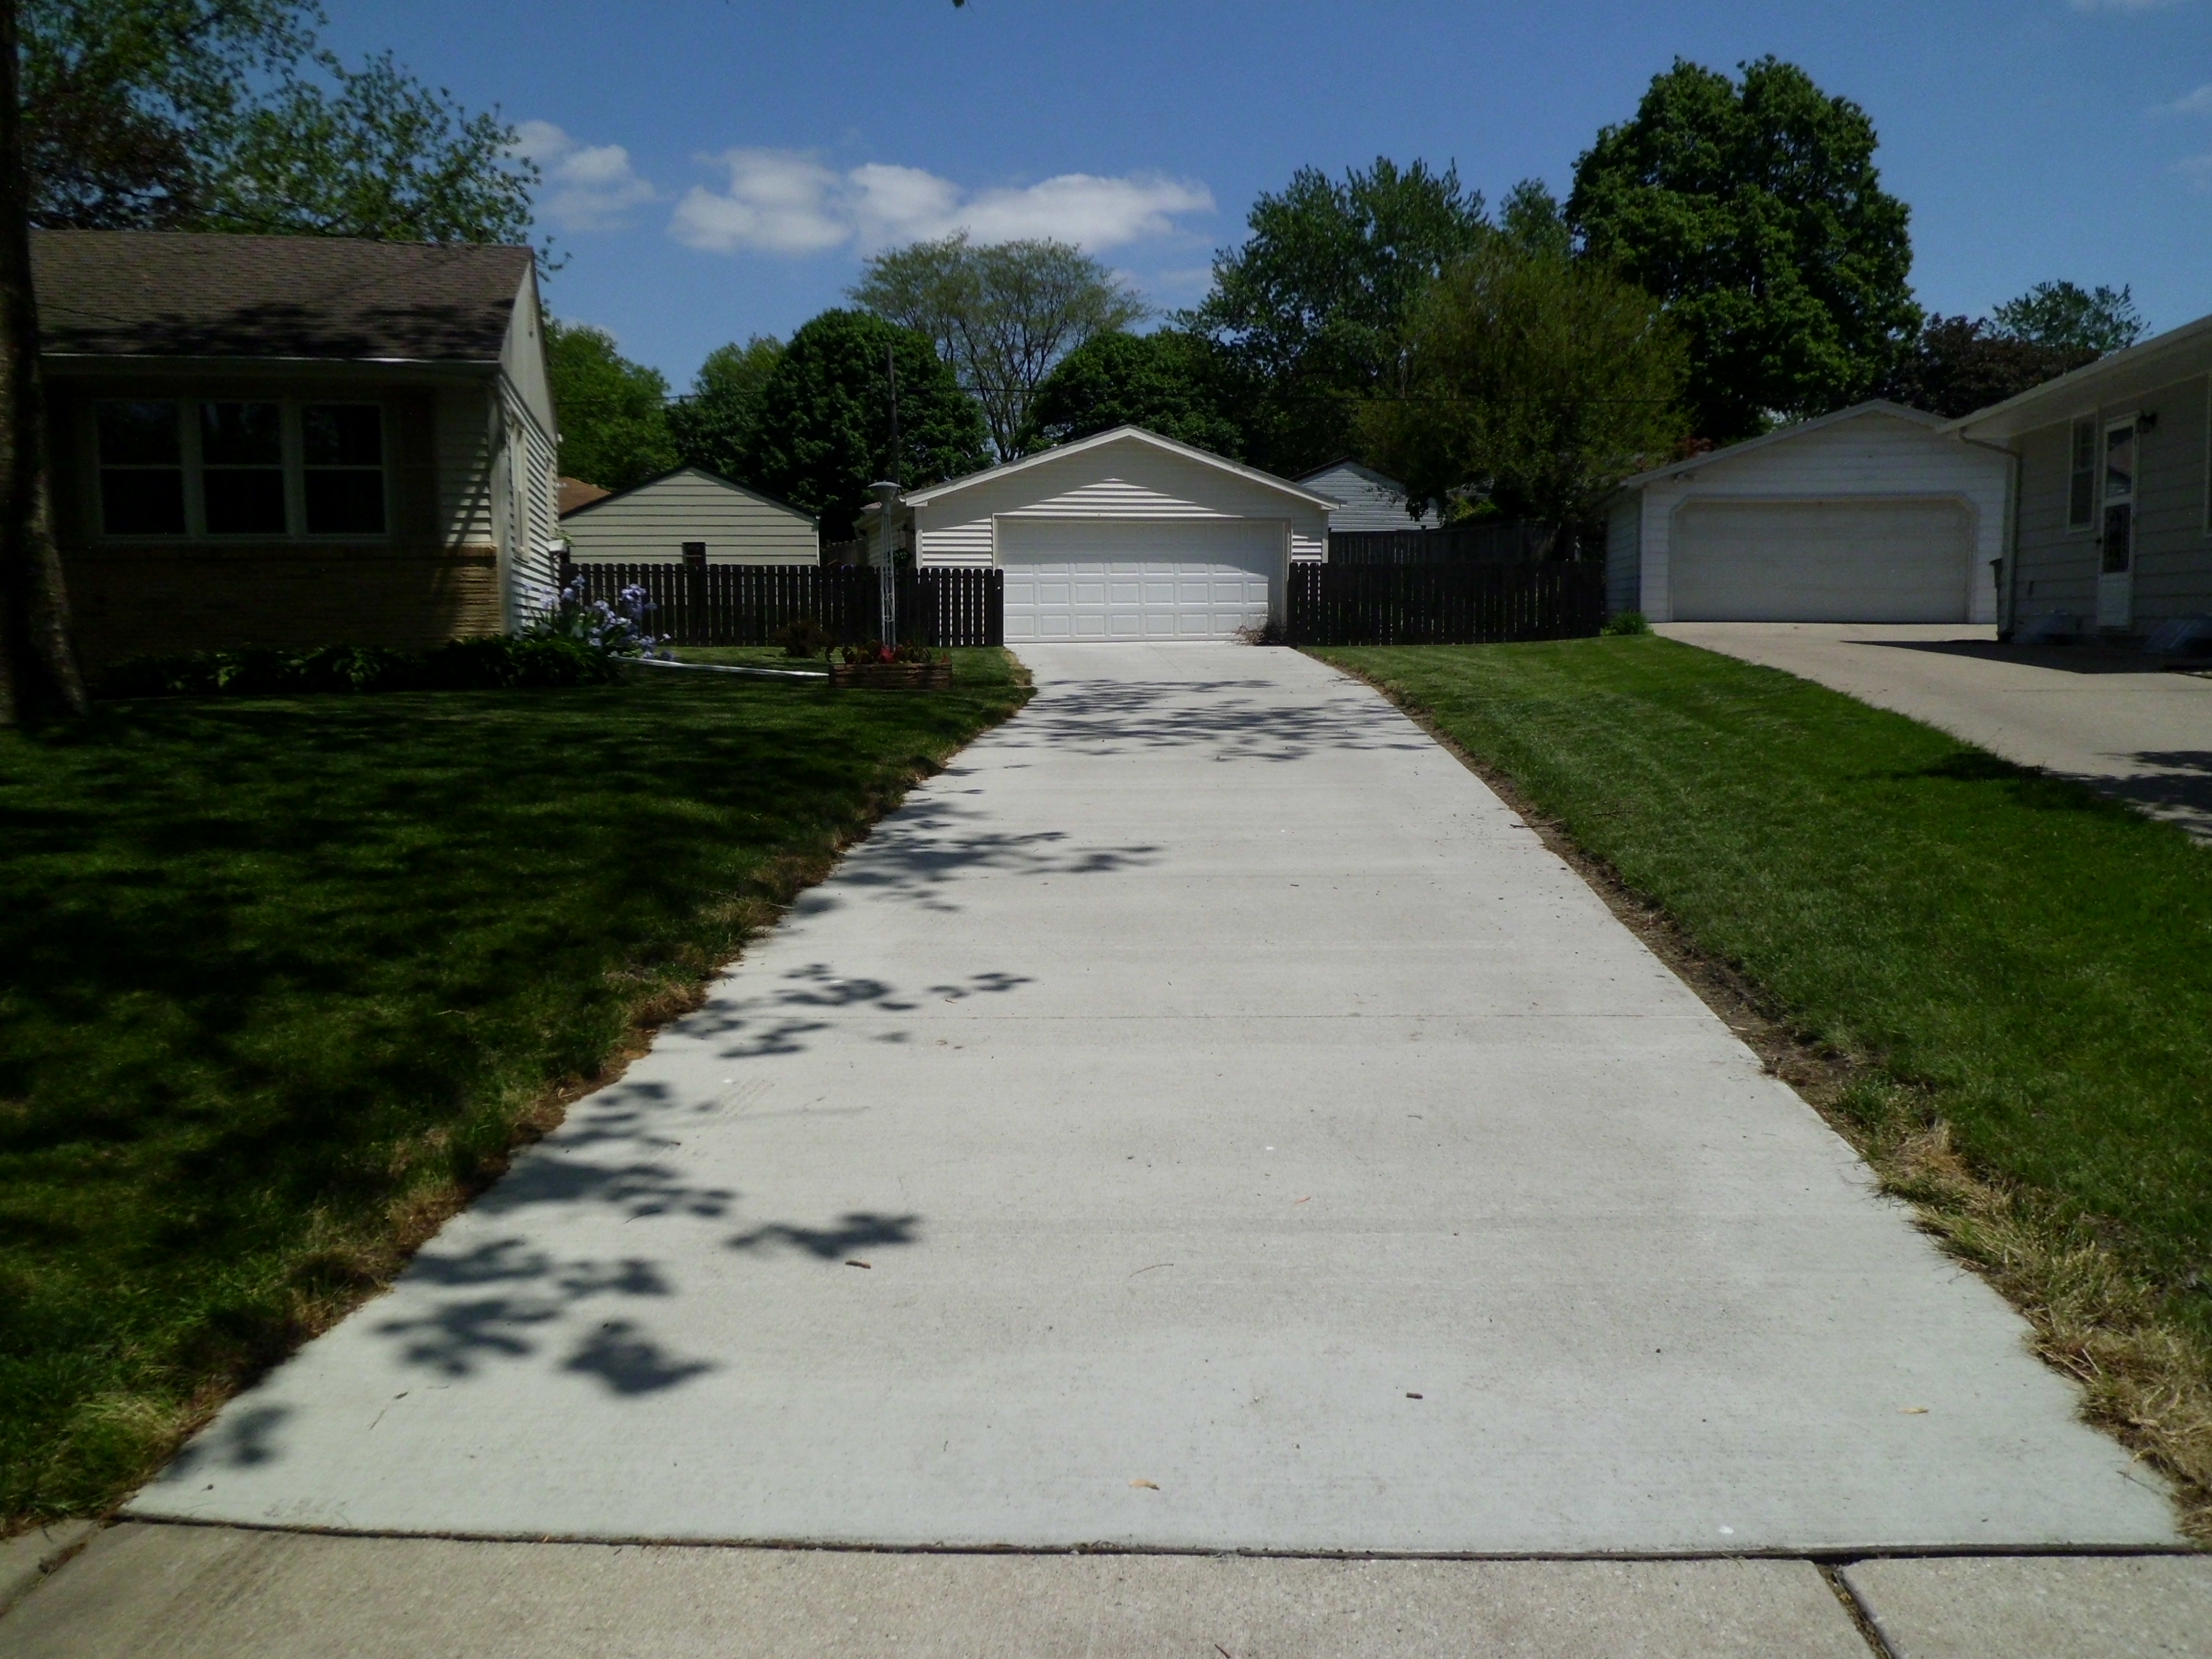 Concrete contractor terry 39 s quality concrete for New concrete driveway